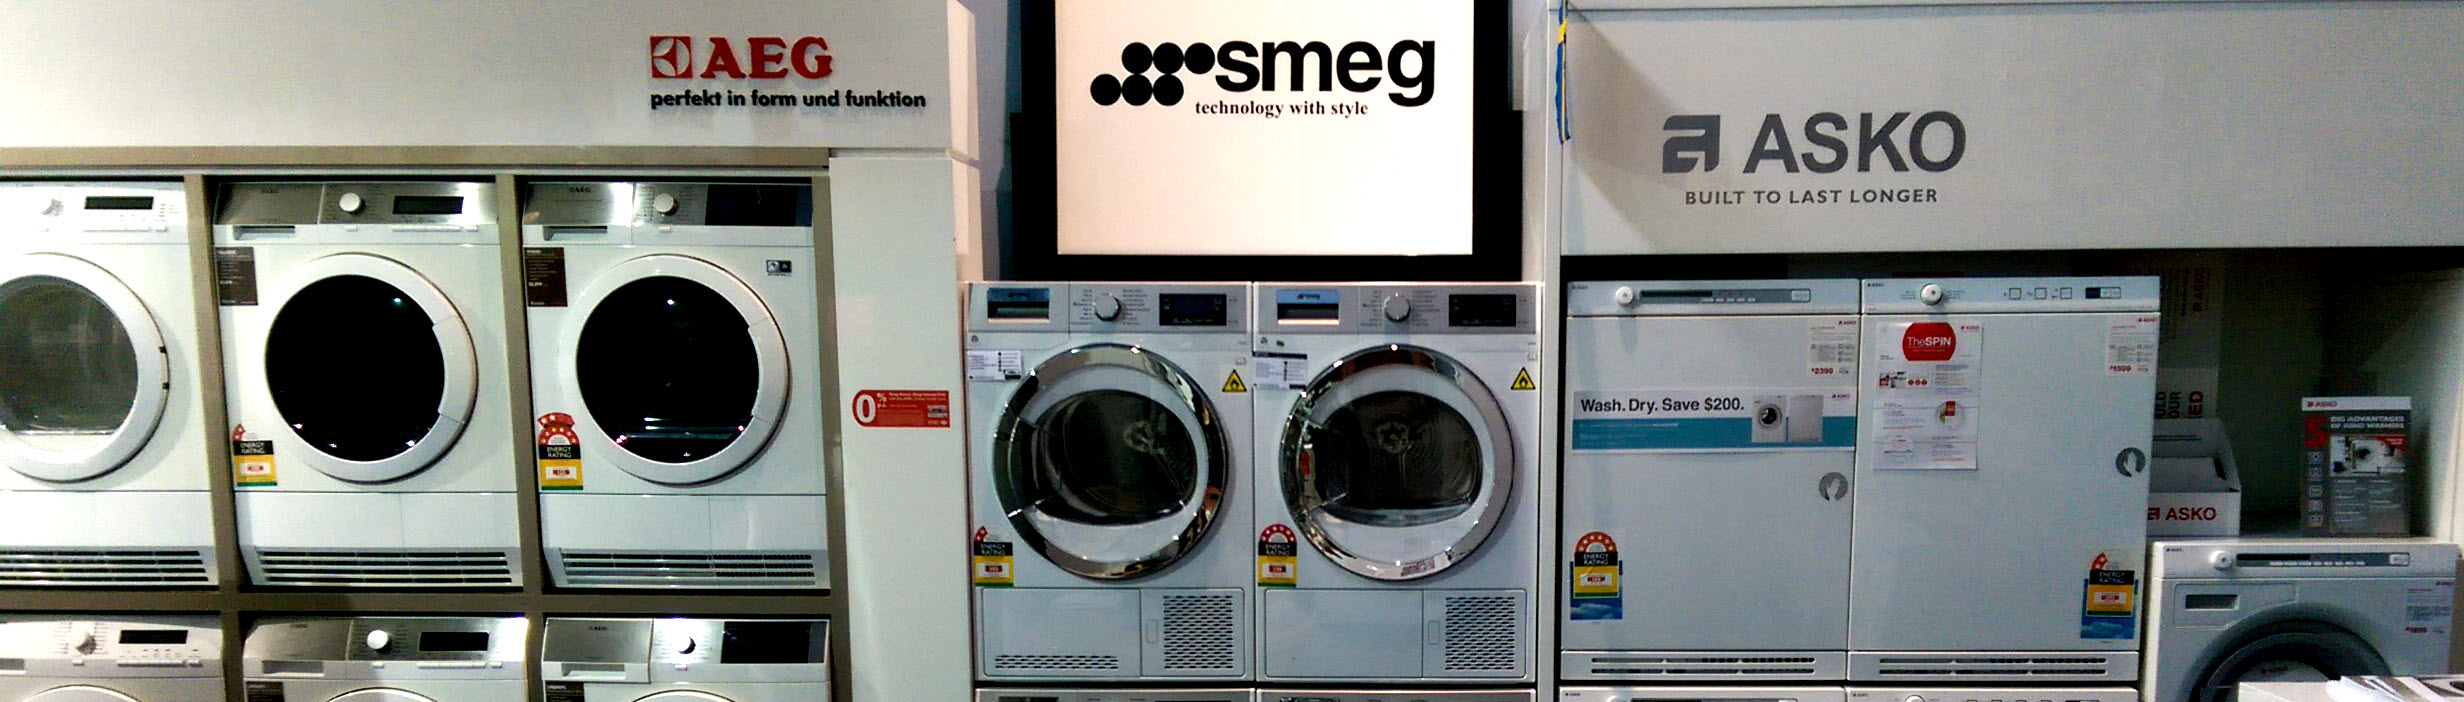 Camberwell Electrics Instore Washers & Dryers